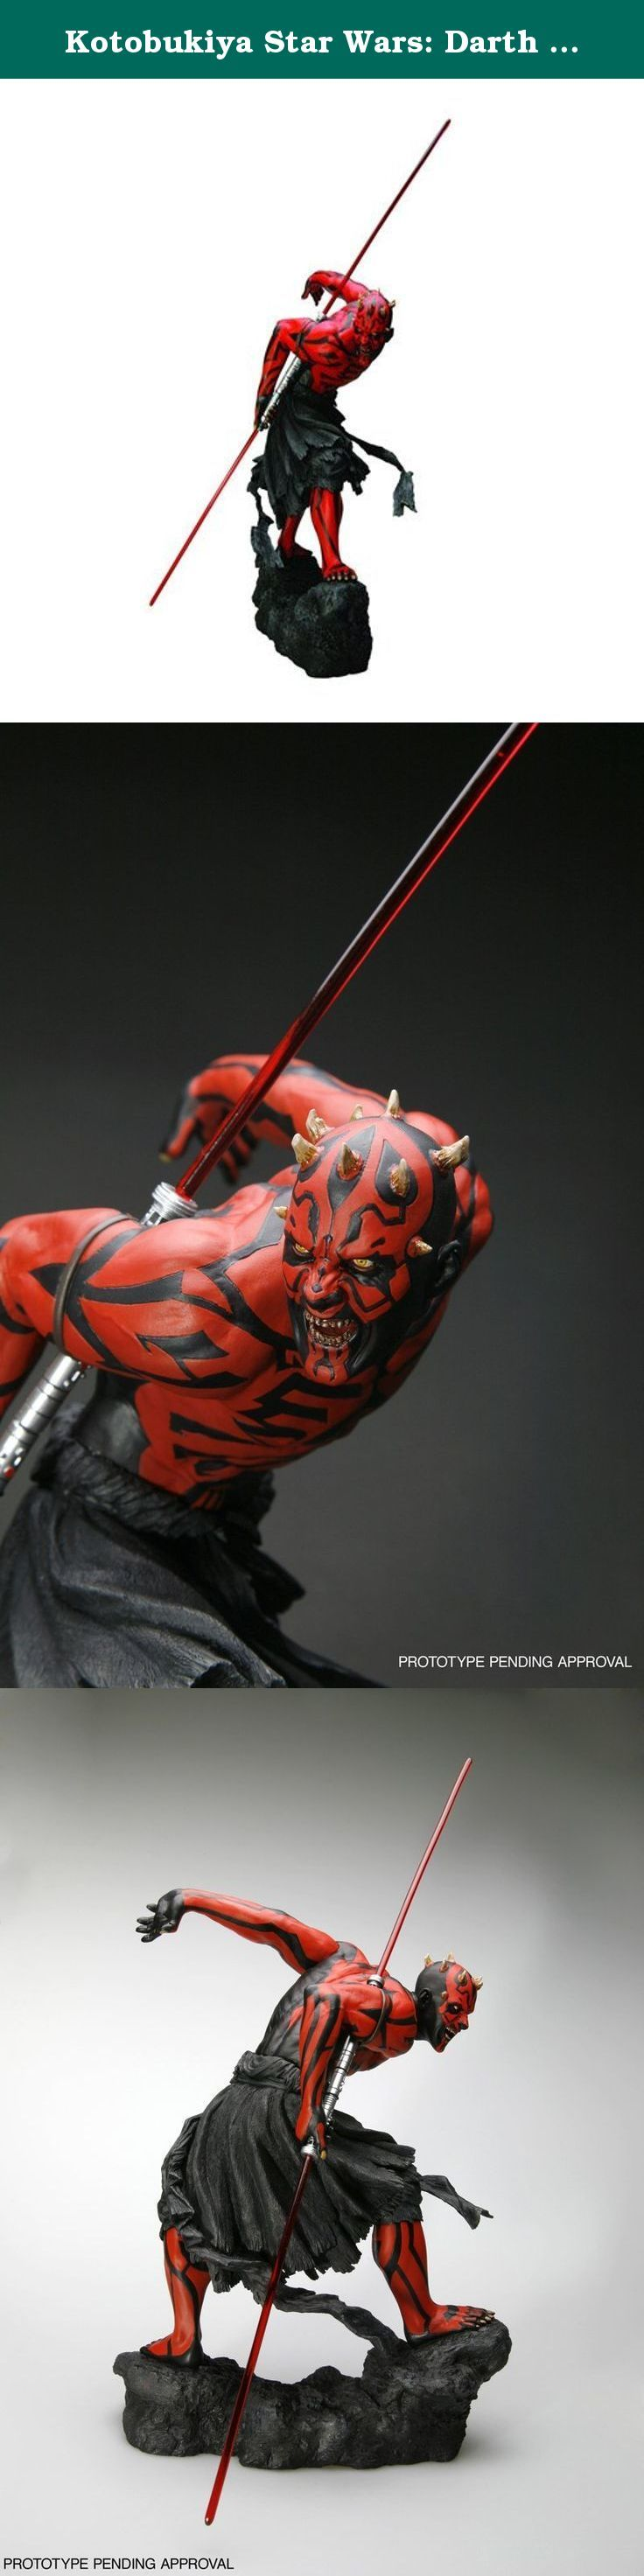 Kotobukiya Star Wars: Darth Maul Light Up ArtFX Statue. A Kotobukiya Japanese import. The 1/7th scale Star Wars ArtFX series is back, and it's back in a big way. Beginning an all new line of great heroes and villains from the Star Wars universe is the Sith master of the double-bladed lightsaber, Darth Maul. Appearing in Episode I - A Phantom Menace, Maul, an alien Zabrak, was the first member of the Sith to act openly in recorded history, ruthlessly attacking the Jedi Qui-Gon Jinn and...